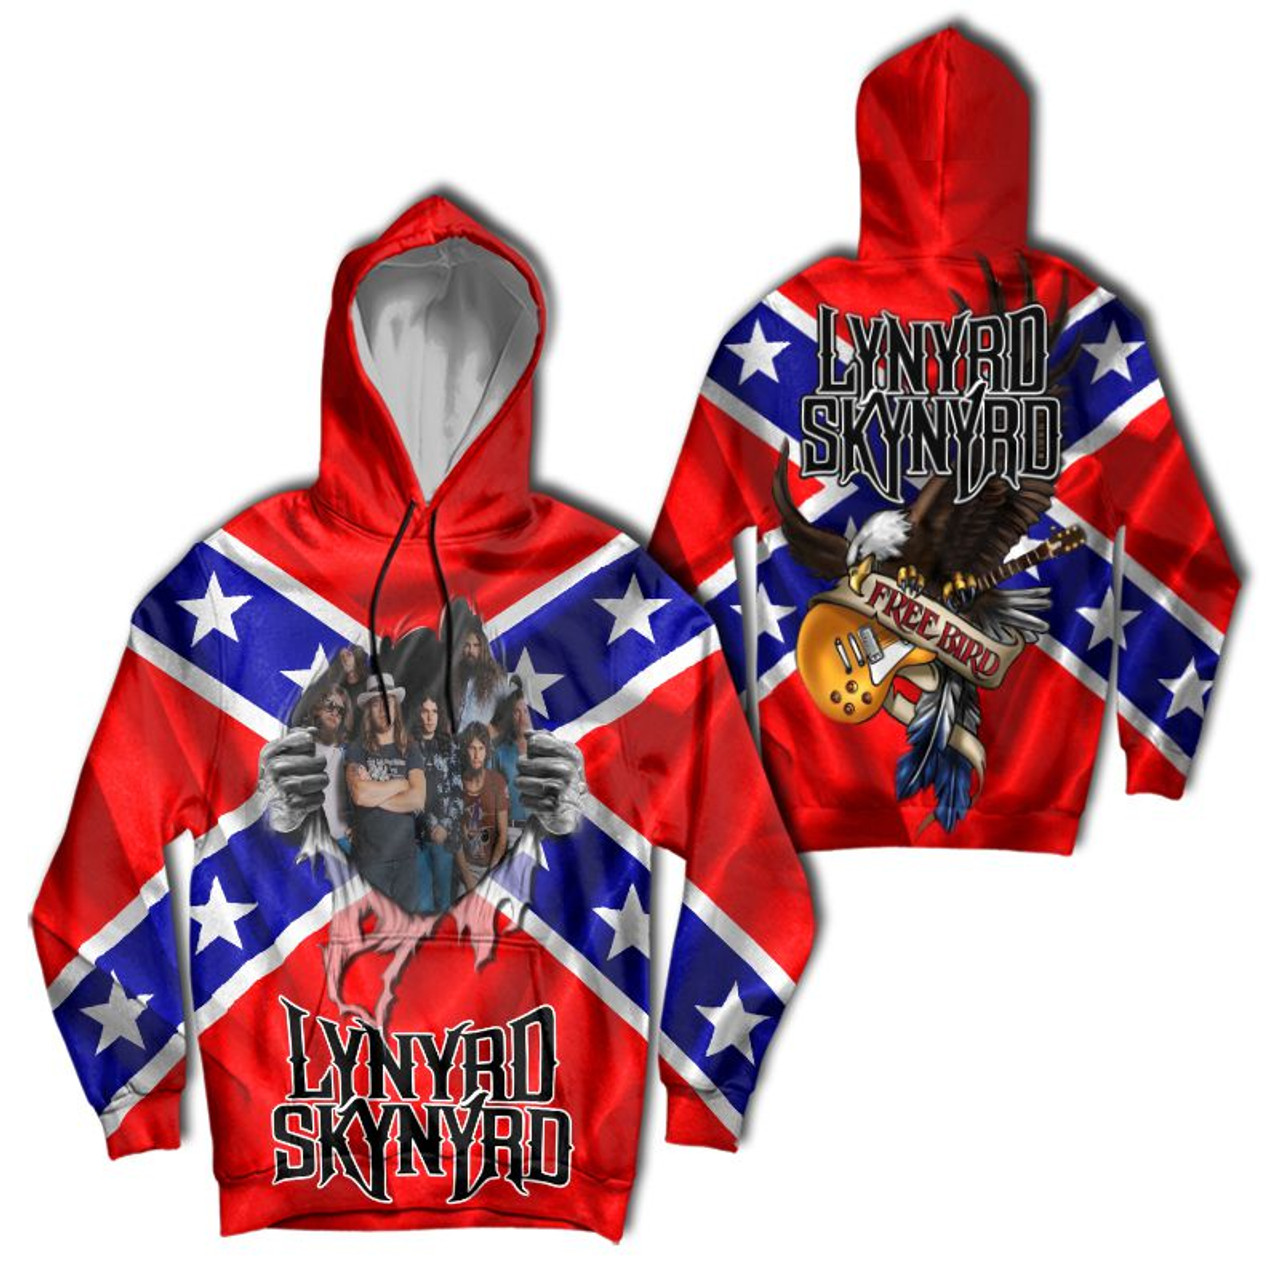 **(OFFICIAL-LYNYRD-SKYNYRD-FREE-BIRD-PULLOVER-HOODIES/DEEP-ROOTED-CLASSIC-SOUTHERN-REBEL-FLAG/NICE-CUSTOM-3D-GRAPHIC-PRINTED-DOUBLE-SIDED-DESIGN/WARM-PREMIUM-OFFICIAL-LYNYRD-SKYNYRD-CONCERT-PULLOVER-POCKET-HOODIES)**